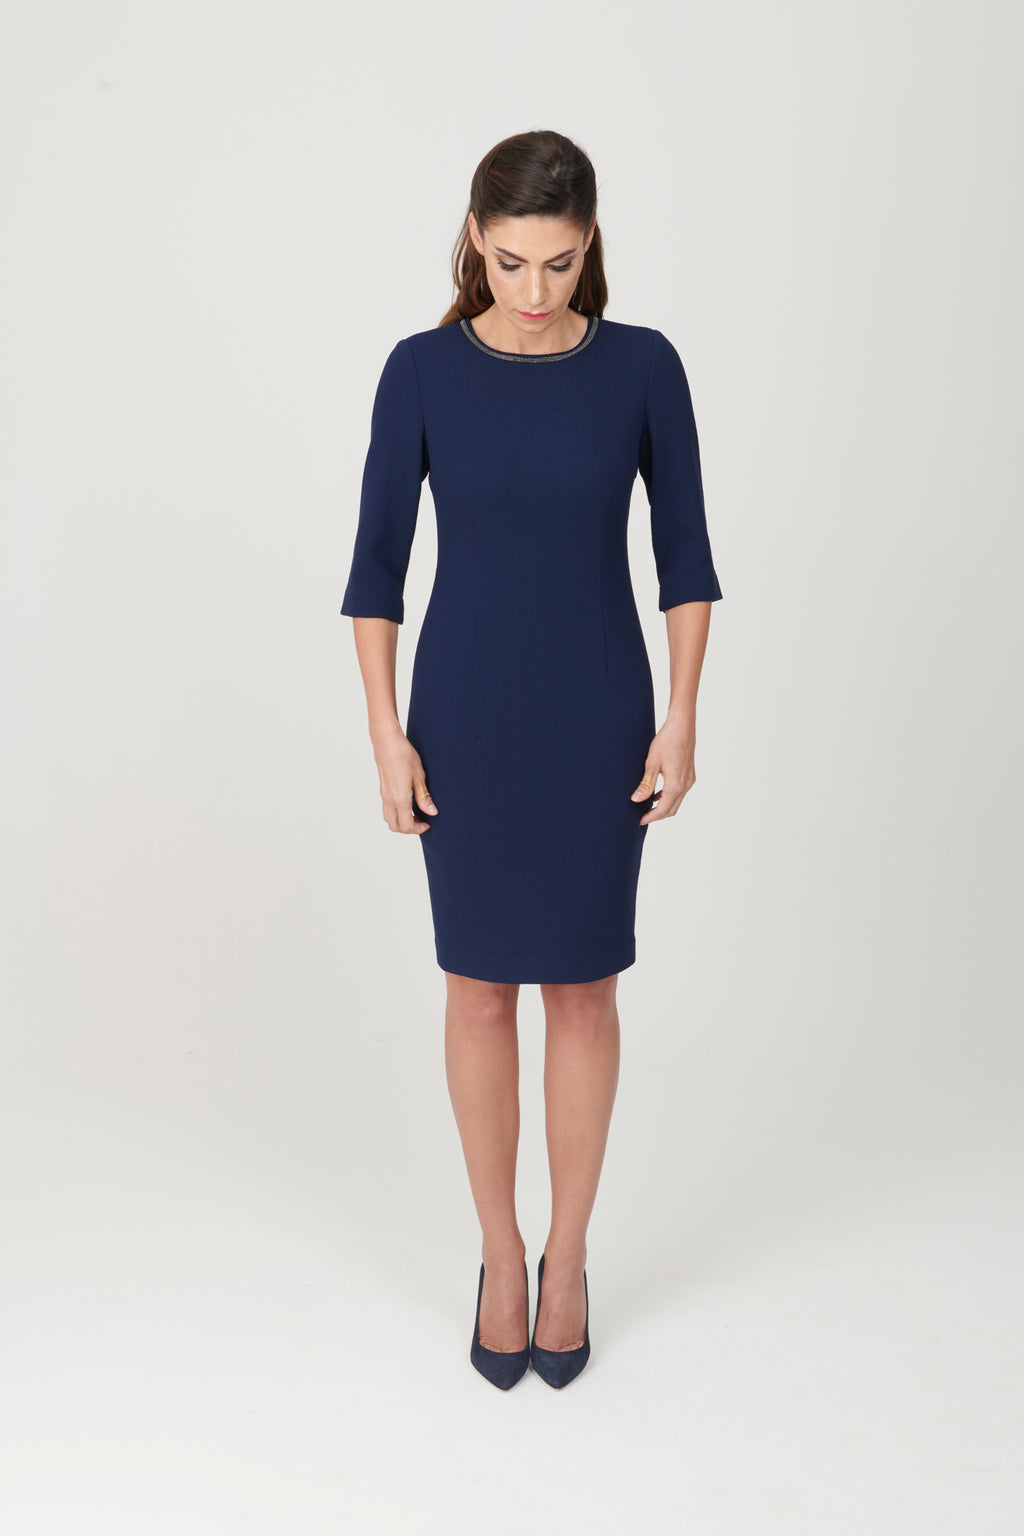 Double Sleeve Crewneck 3 / 4 Sleeve Dress with Detail - My Graphiti